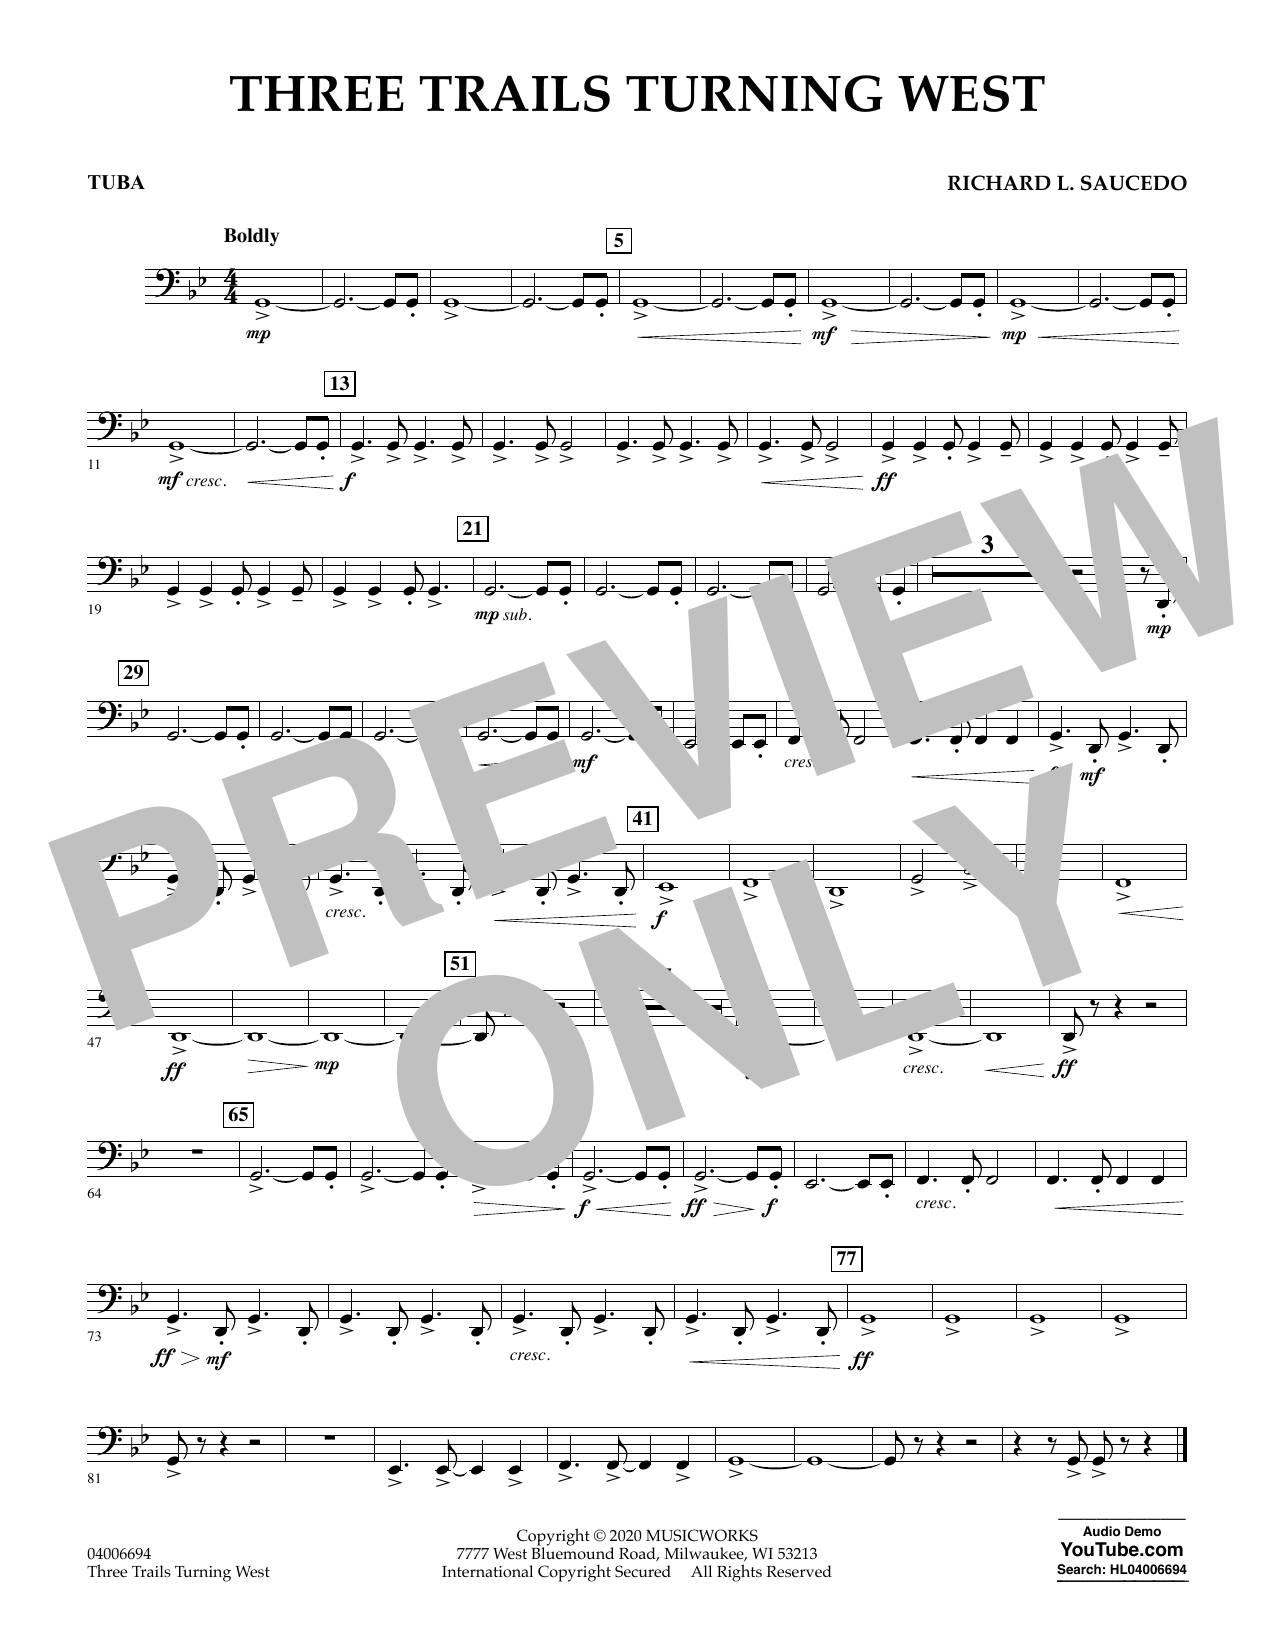 Richard L. Saucedo Three Trails Turning West - Tuba sheet music notes and chords. Download Printable PDF.